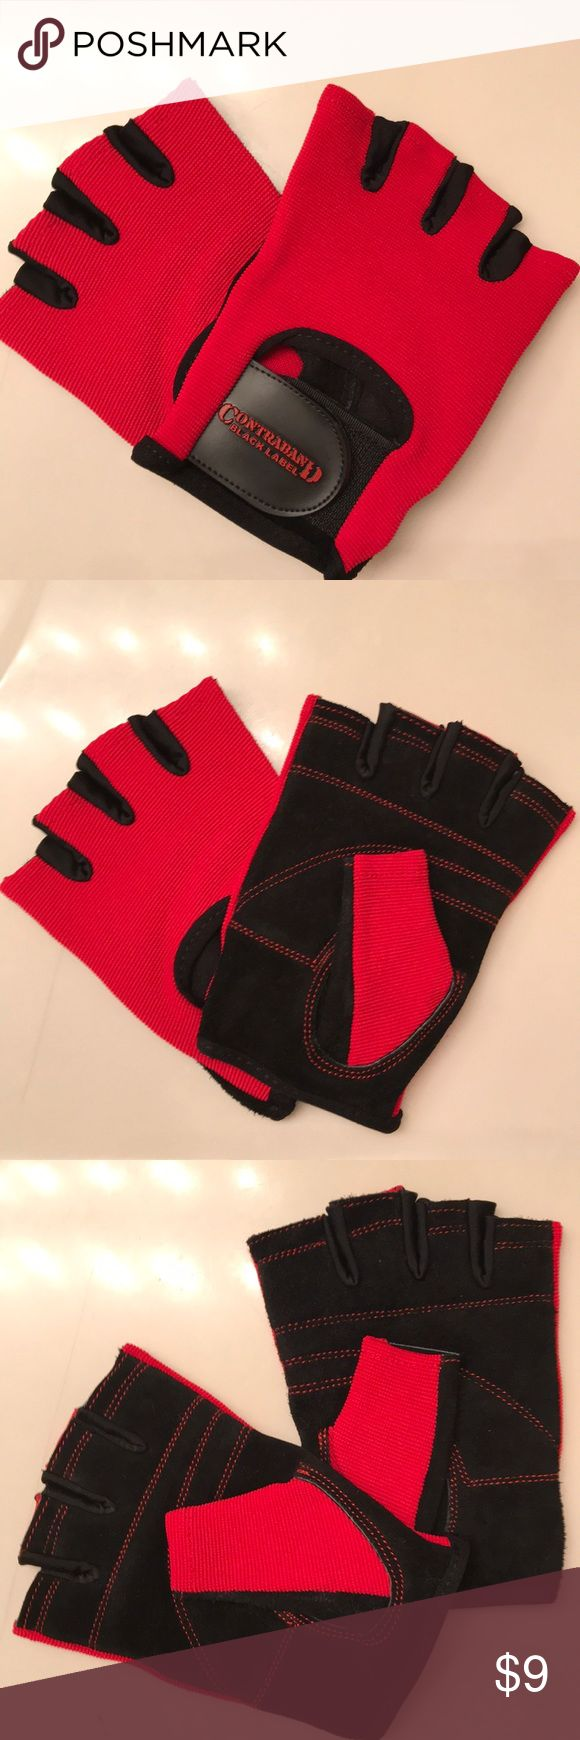 Contraband Black Label 5050 Weight Lifting Gloves Never used. Leather palm, breathable mesh top, soft interior. Contraband Accessories Gloves & Mittens